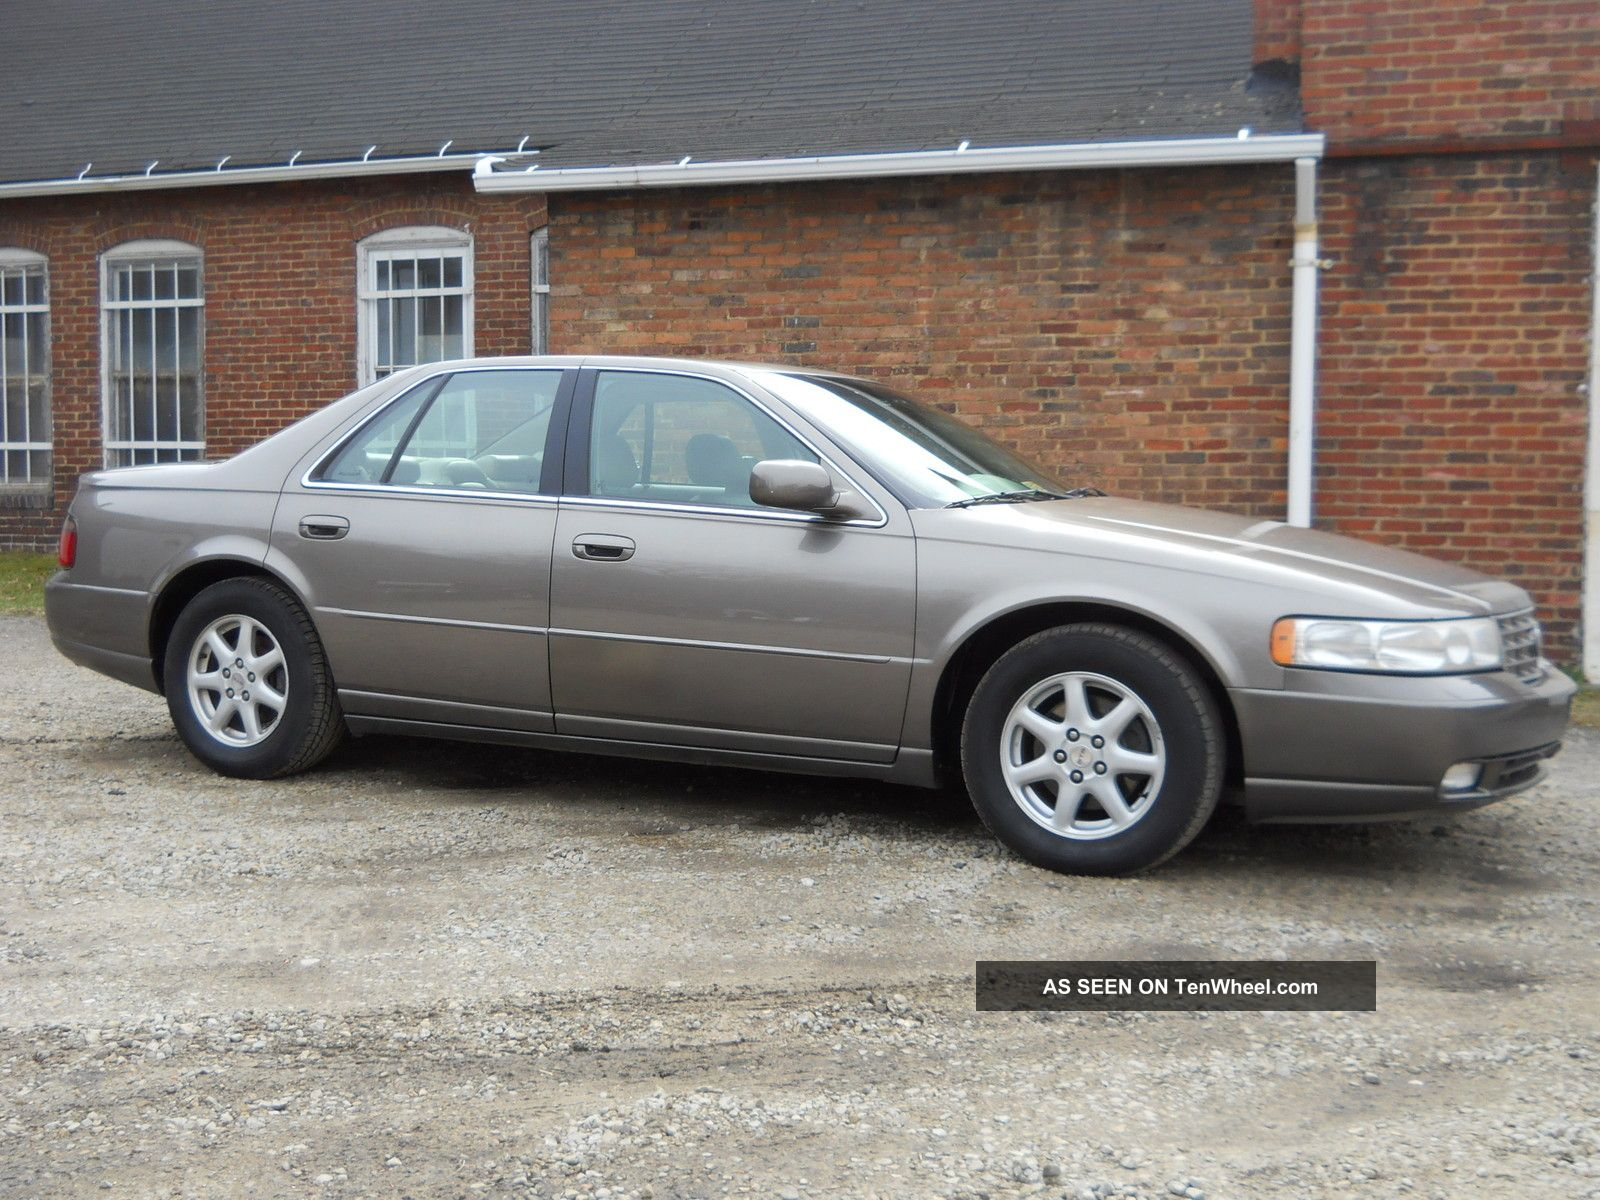 1999 Cadillac Sts 94k Northstar Engine Mechanic Special